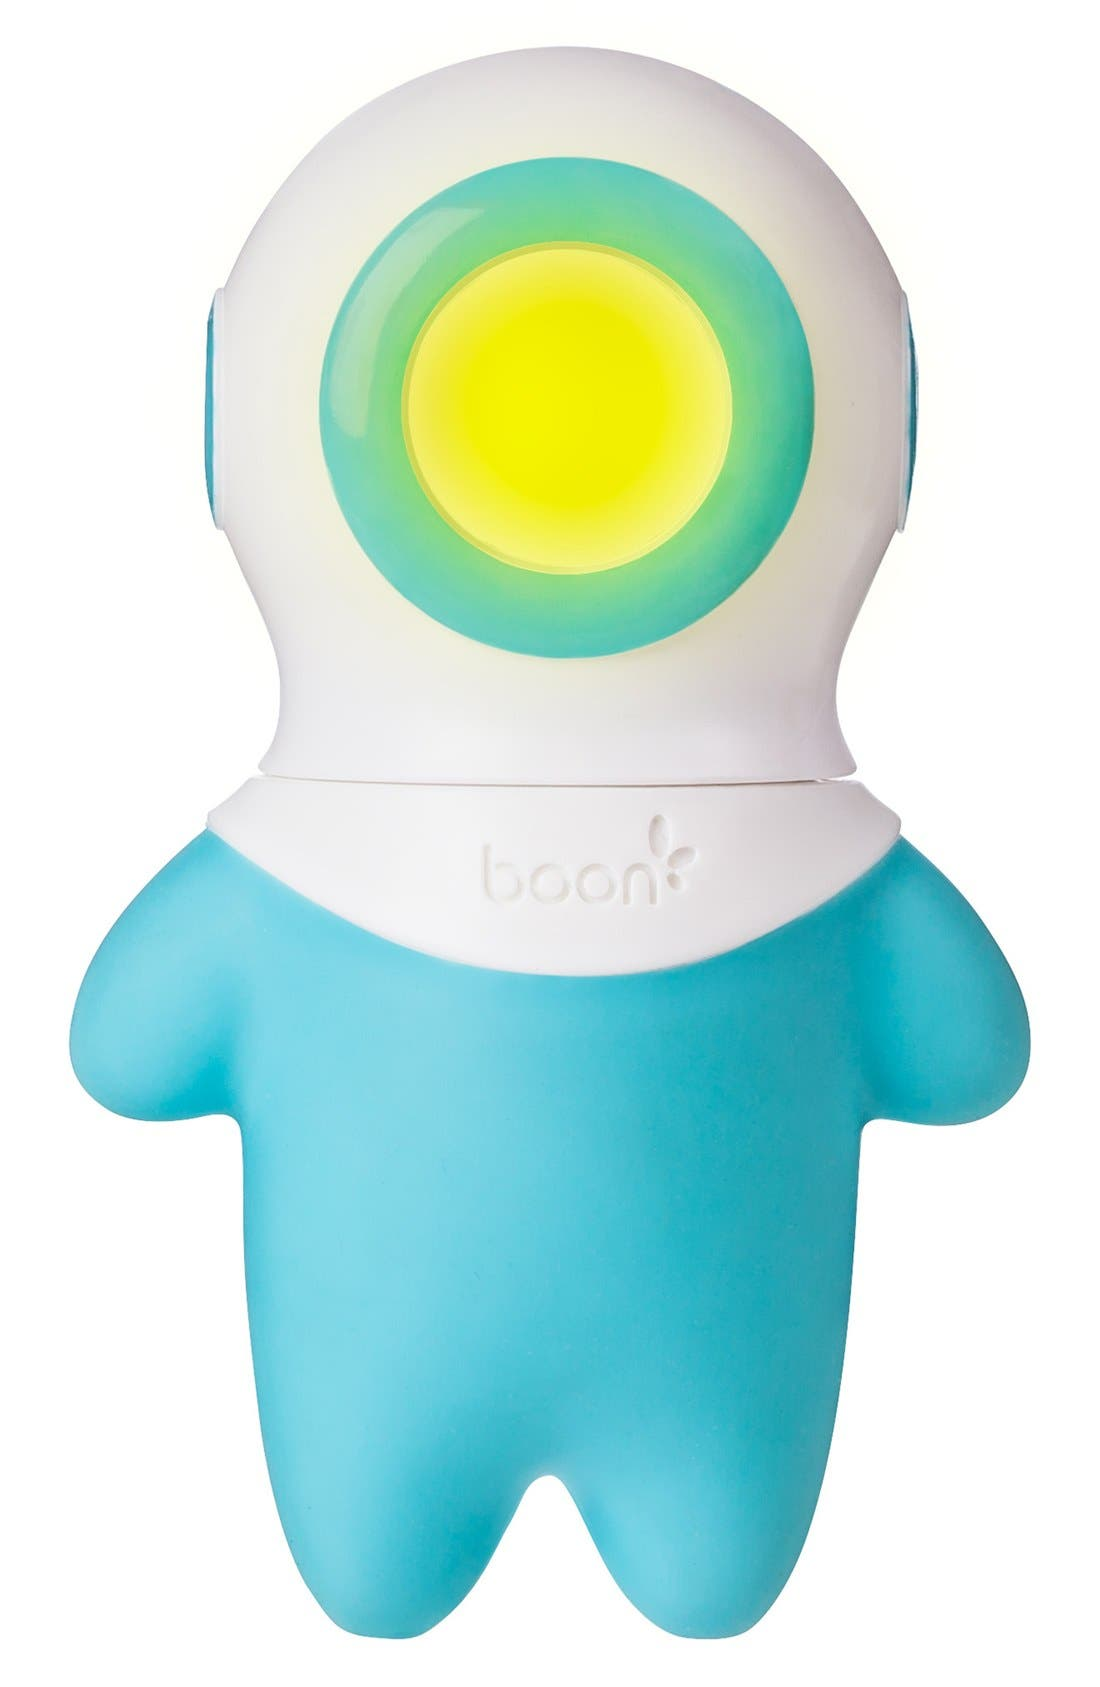 'Marco' Light-Up Bath Toy,                             Main thumbnail 1, color,                             BLUE